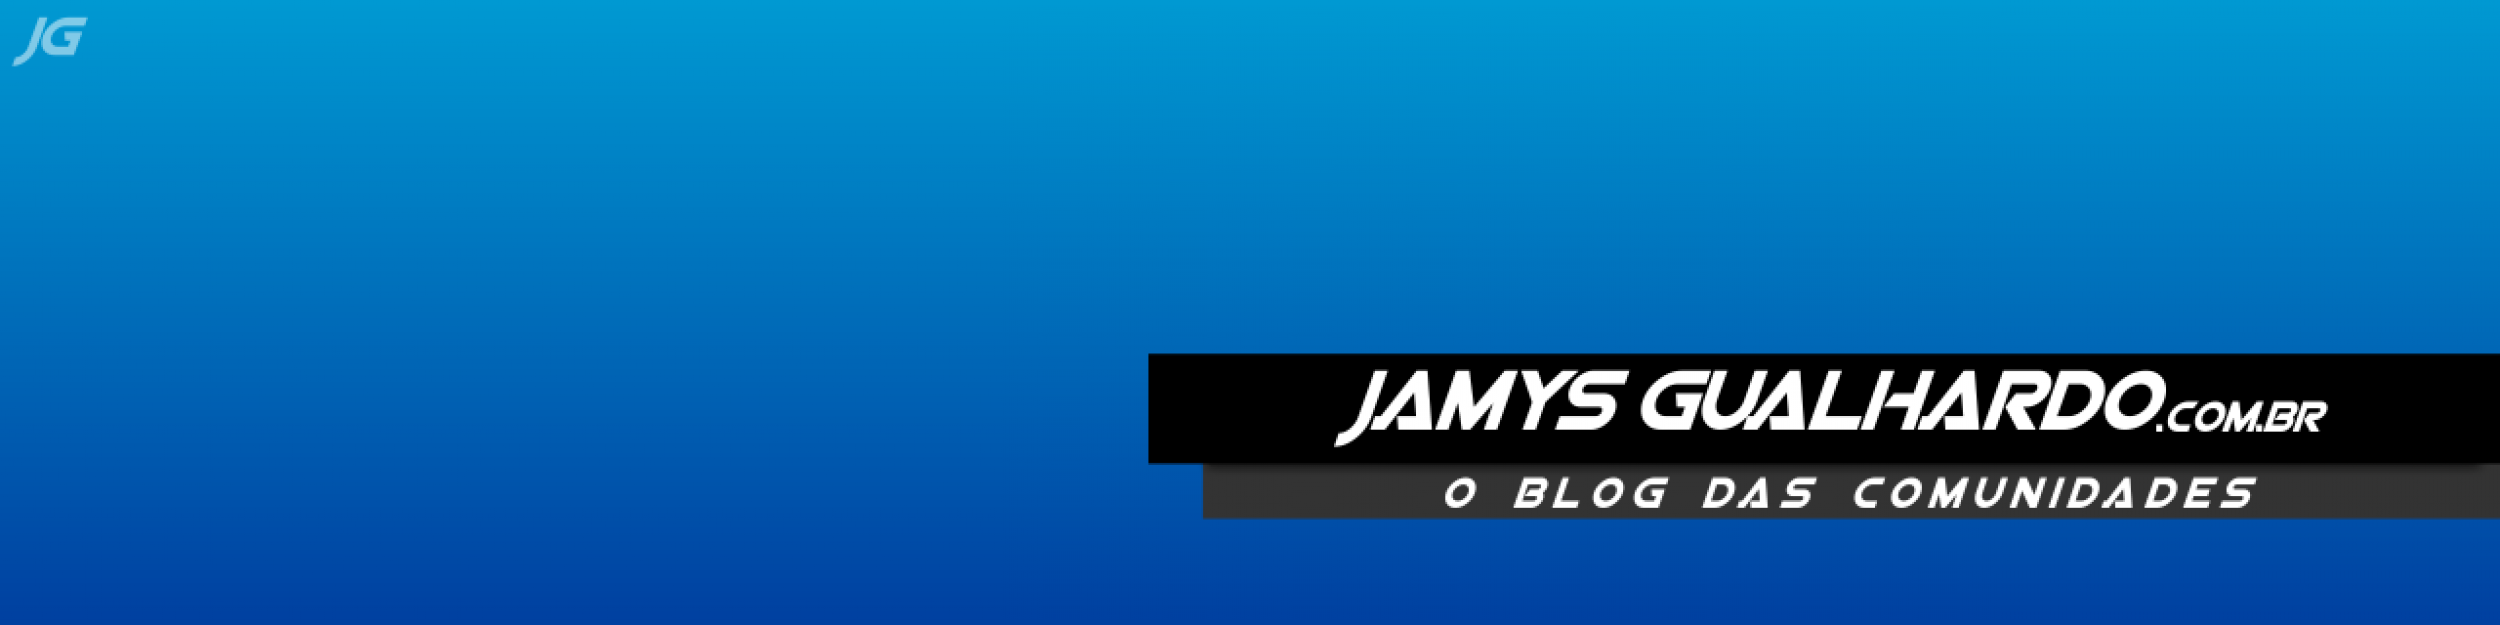 Blog do Jamys Gualhardo